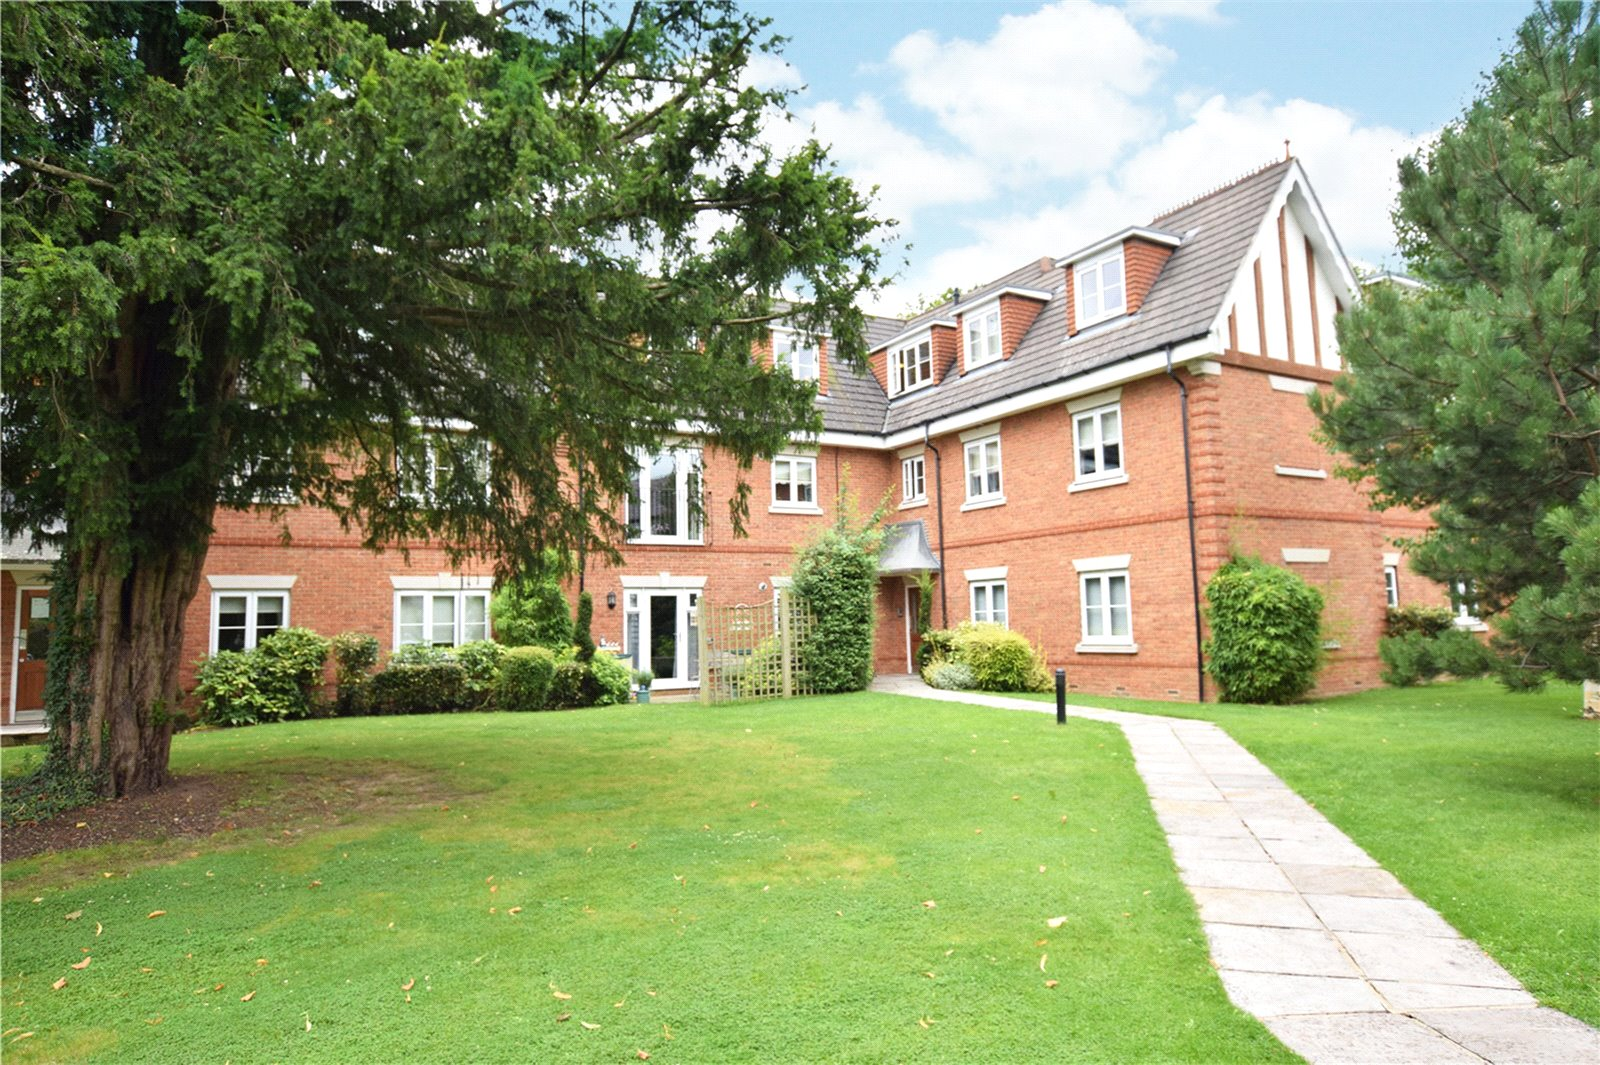 2 Bedrooms Apartment Flat for sale in Oxfordshire Place, Warfield, Bracknell, Berkshire, RG42